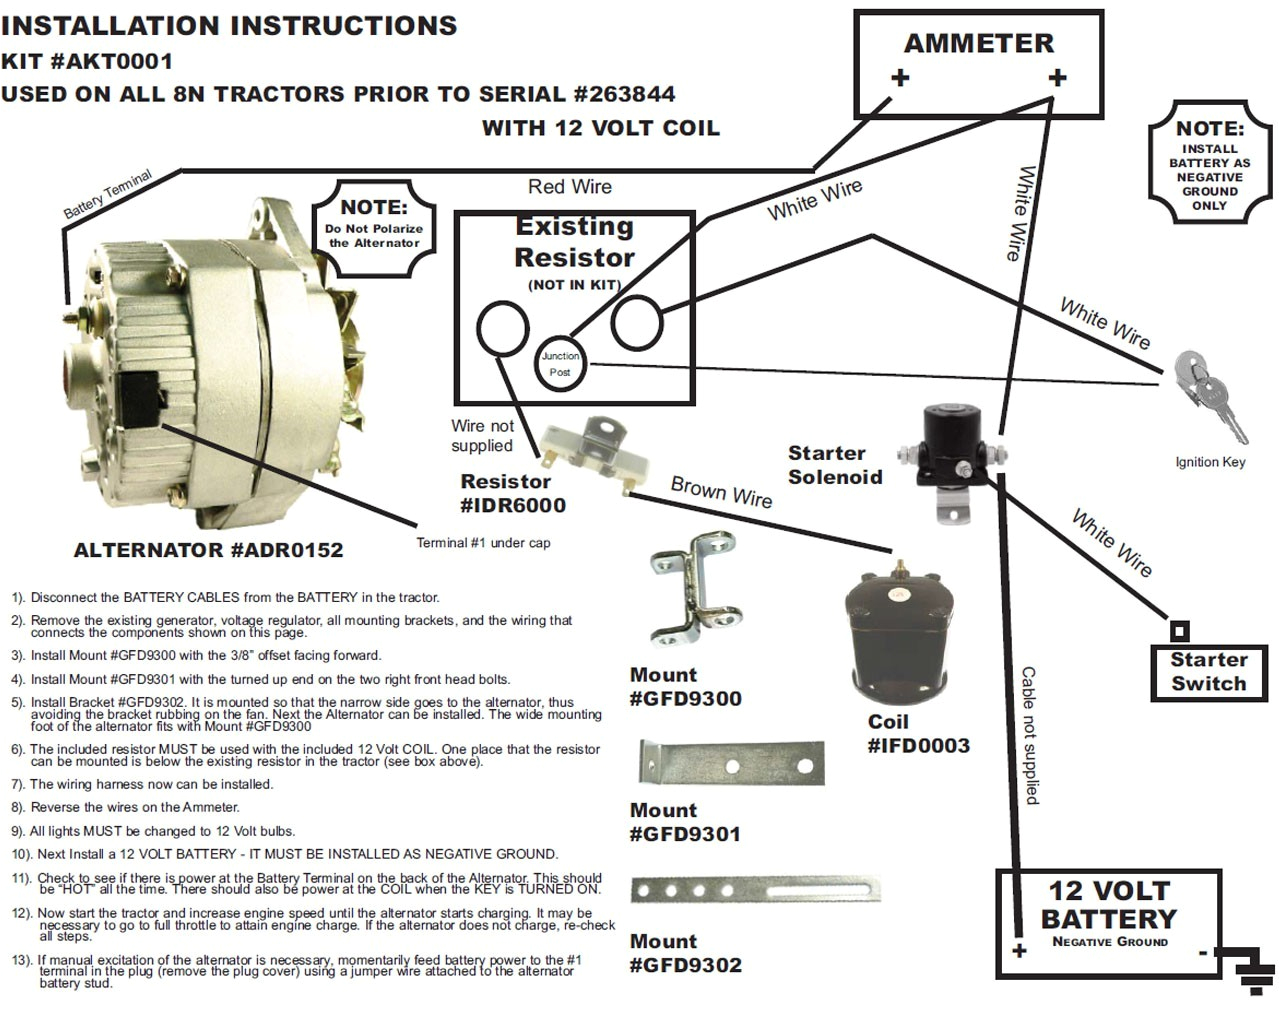 negative ignition volt beautiful positive ford data box starter manual switch harness converting solenoid unique steering diagram generator jpg